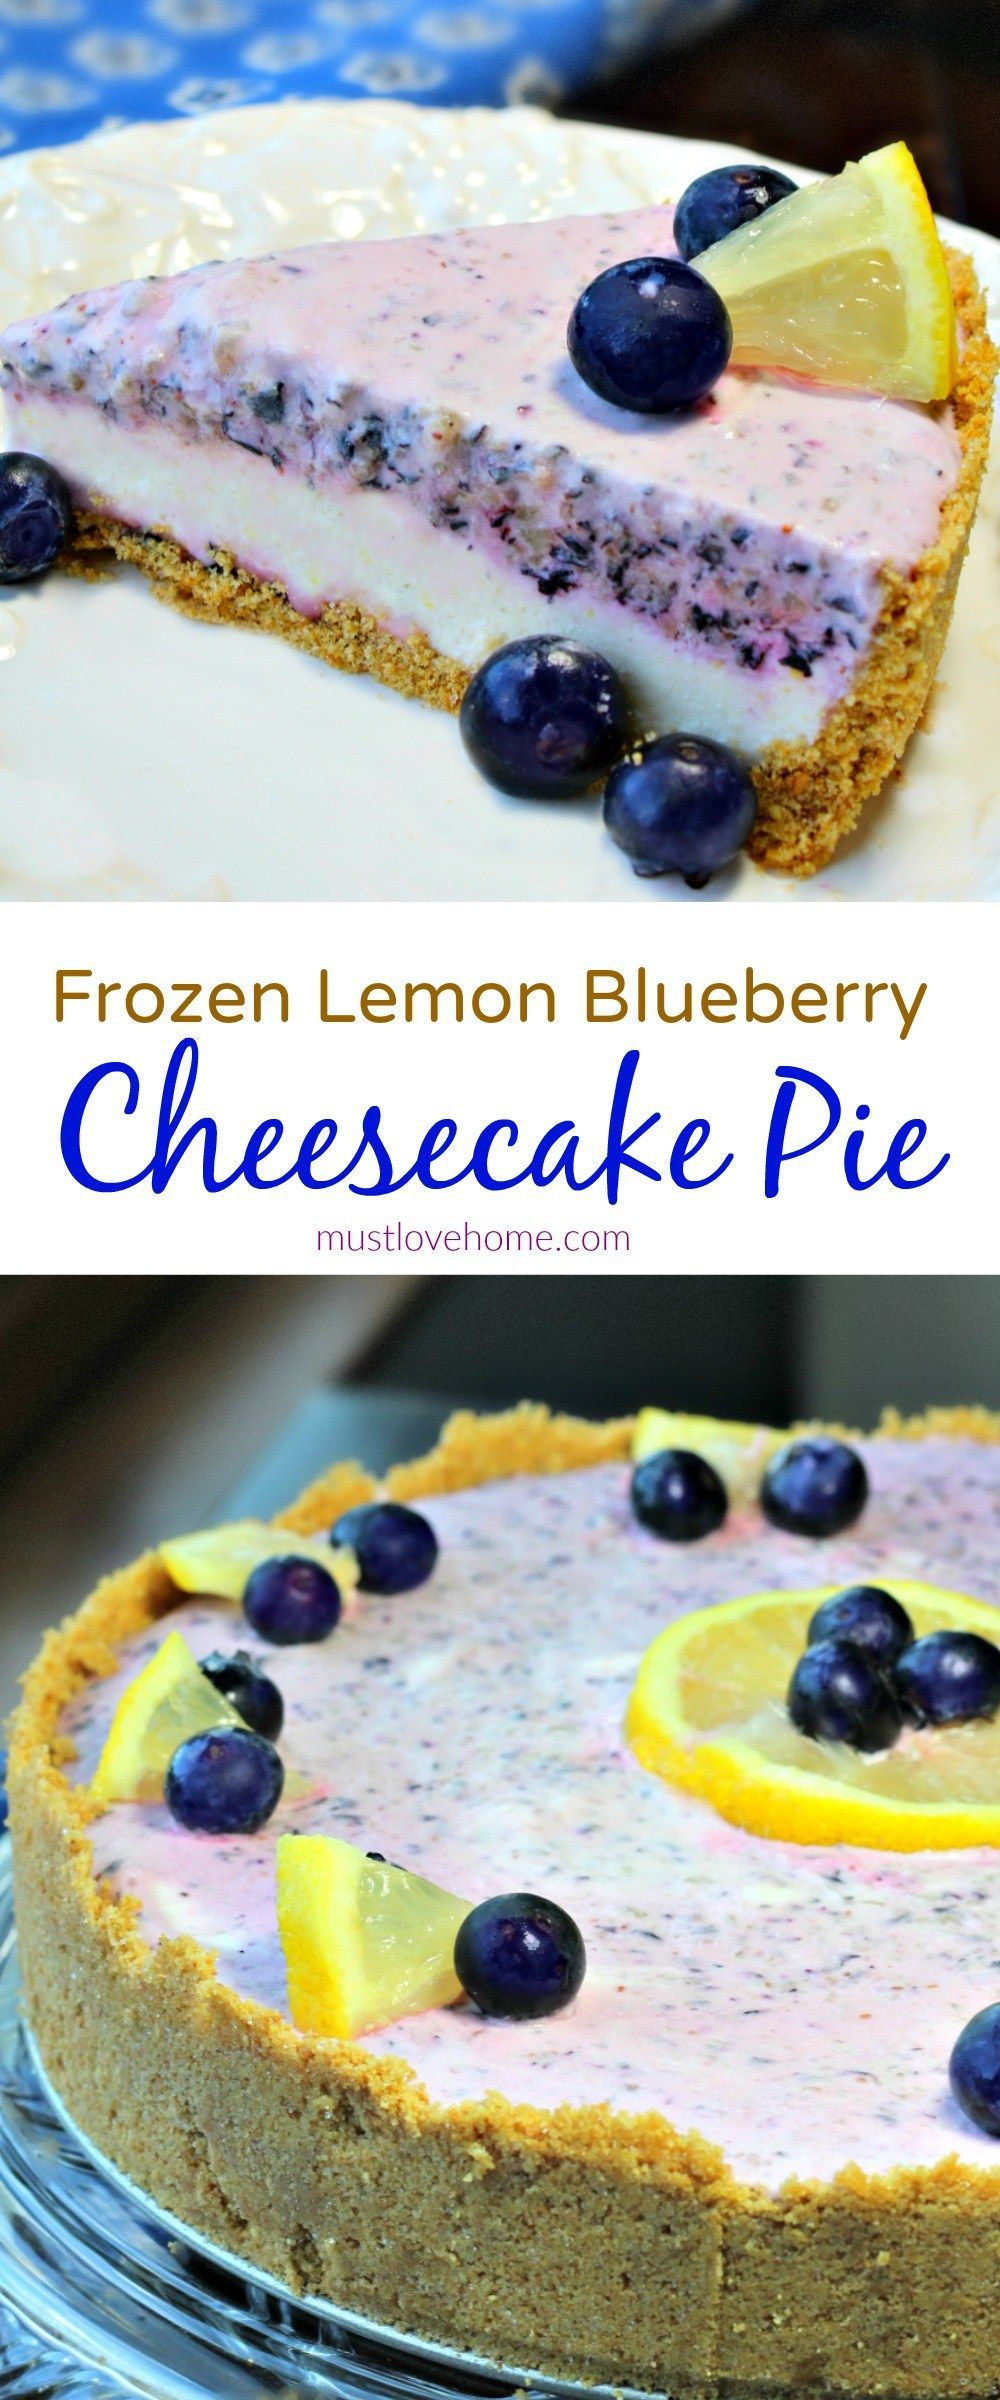 Frozen Lemon Blueberry Cheesecake Pie - a frosty no-bake summertime treat that combines cheesecake and pie into a dessert that will be a hit with the entire family! #lemonblueberrycheesecake